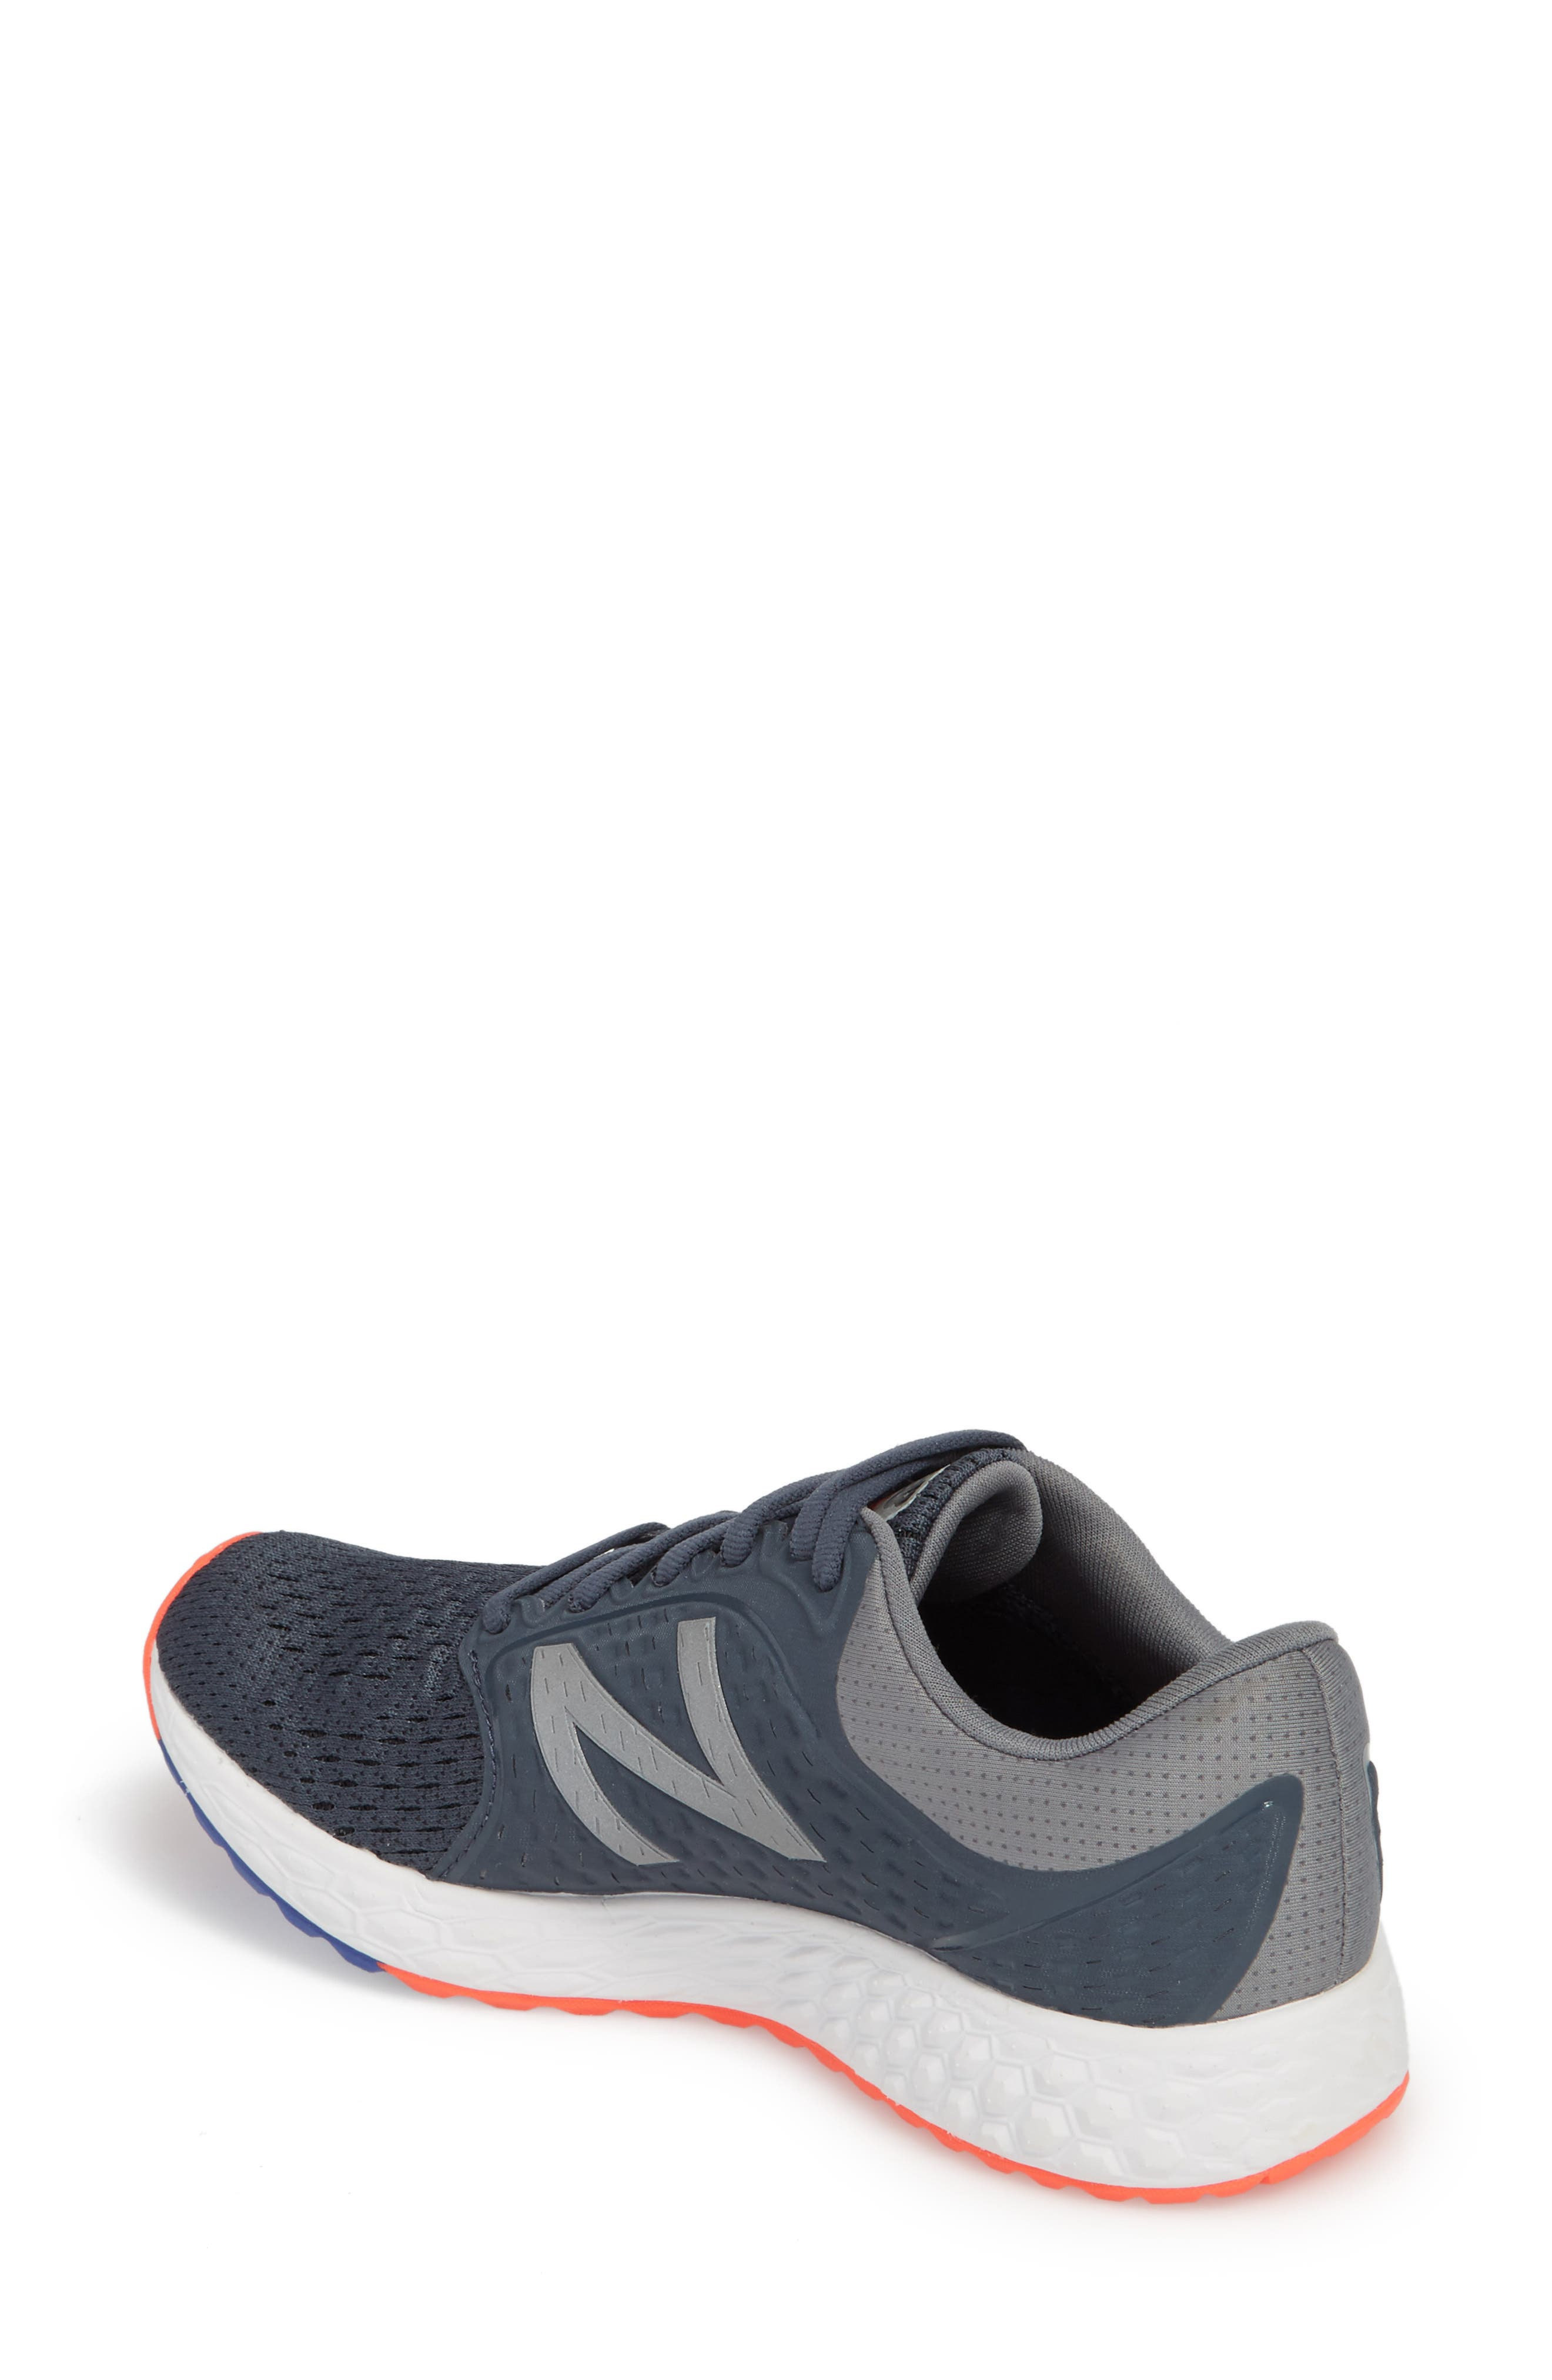 Fresh Foam Zante v4 Running Shoe,                             Alternate thumbnail 2, color,                             Light Grey